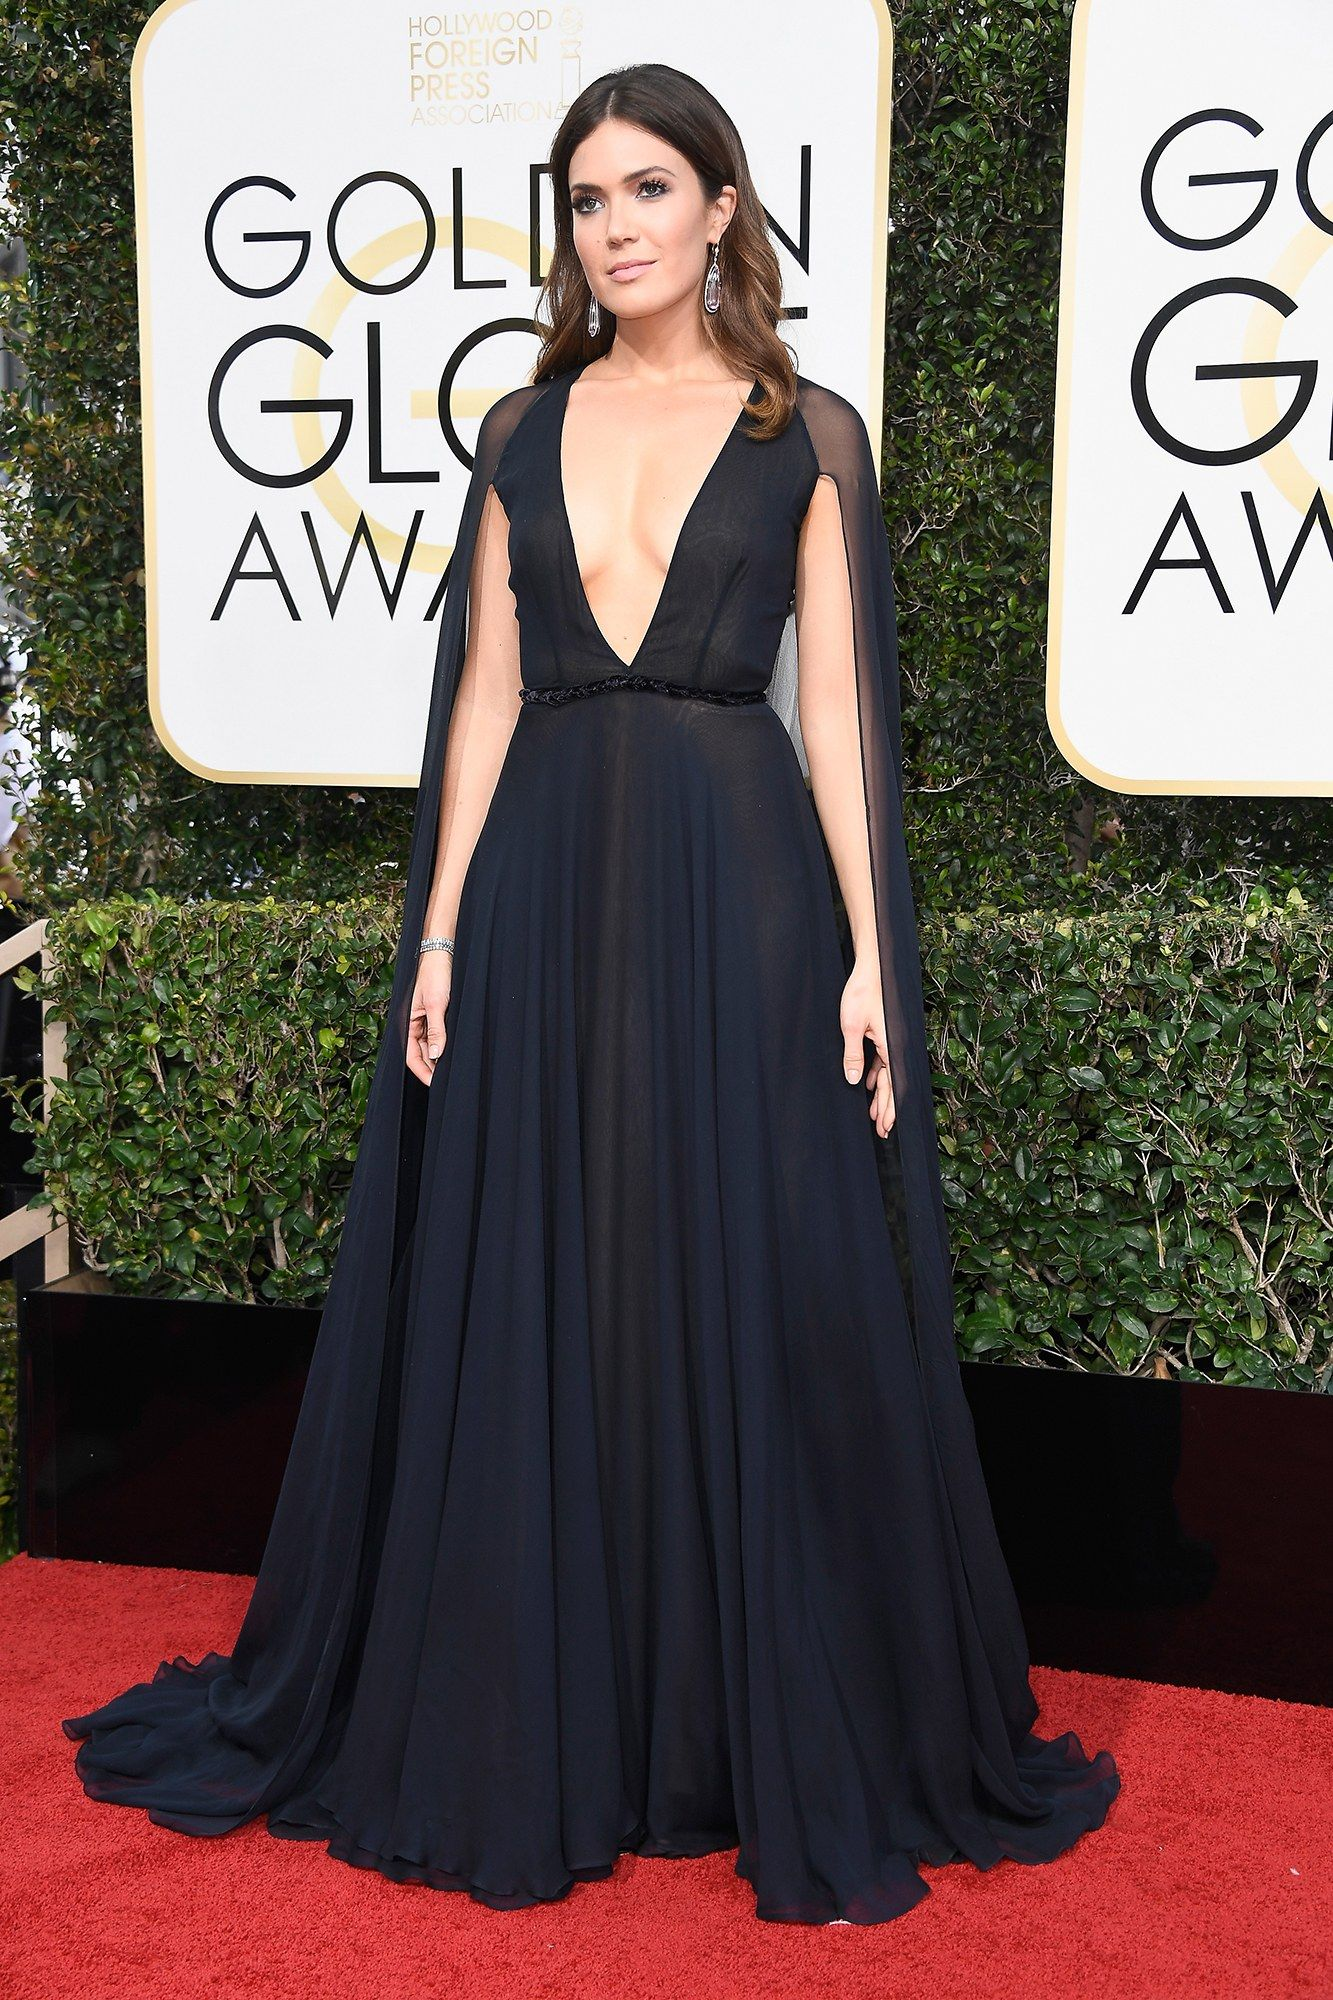 Golden Globes 2017 Red-Carpet Mandy Moore  87a905bc354a